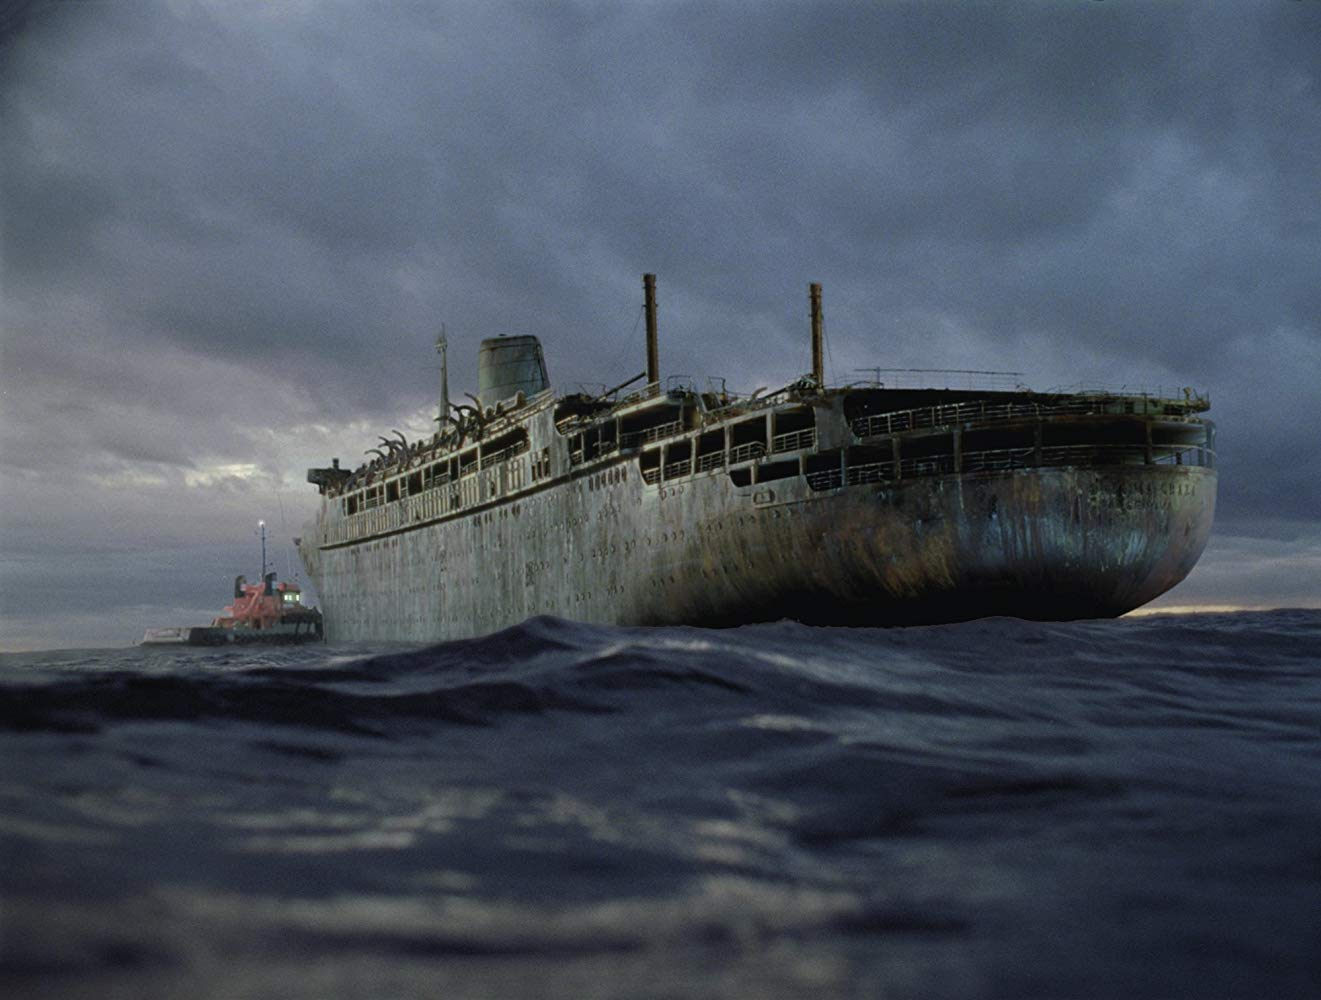 The tug Arctic Warrior approaches the ghost cruise liner Antonia Graza in Ghost Ship (2002)